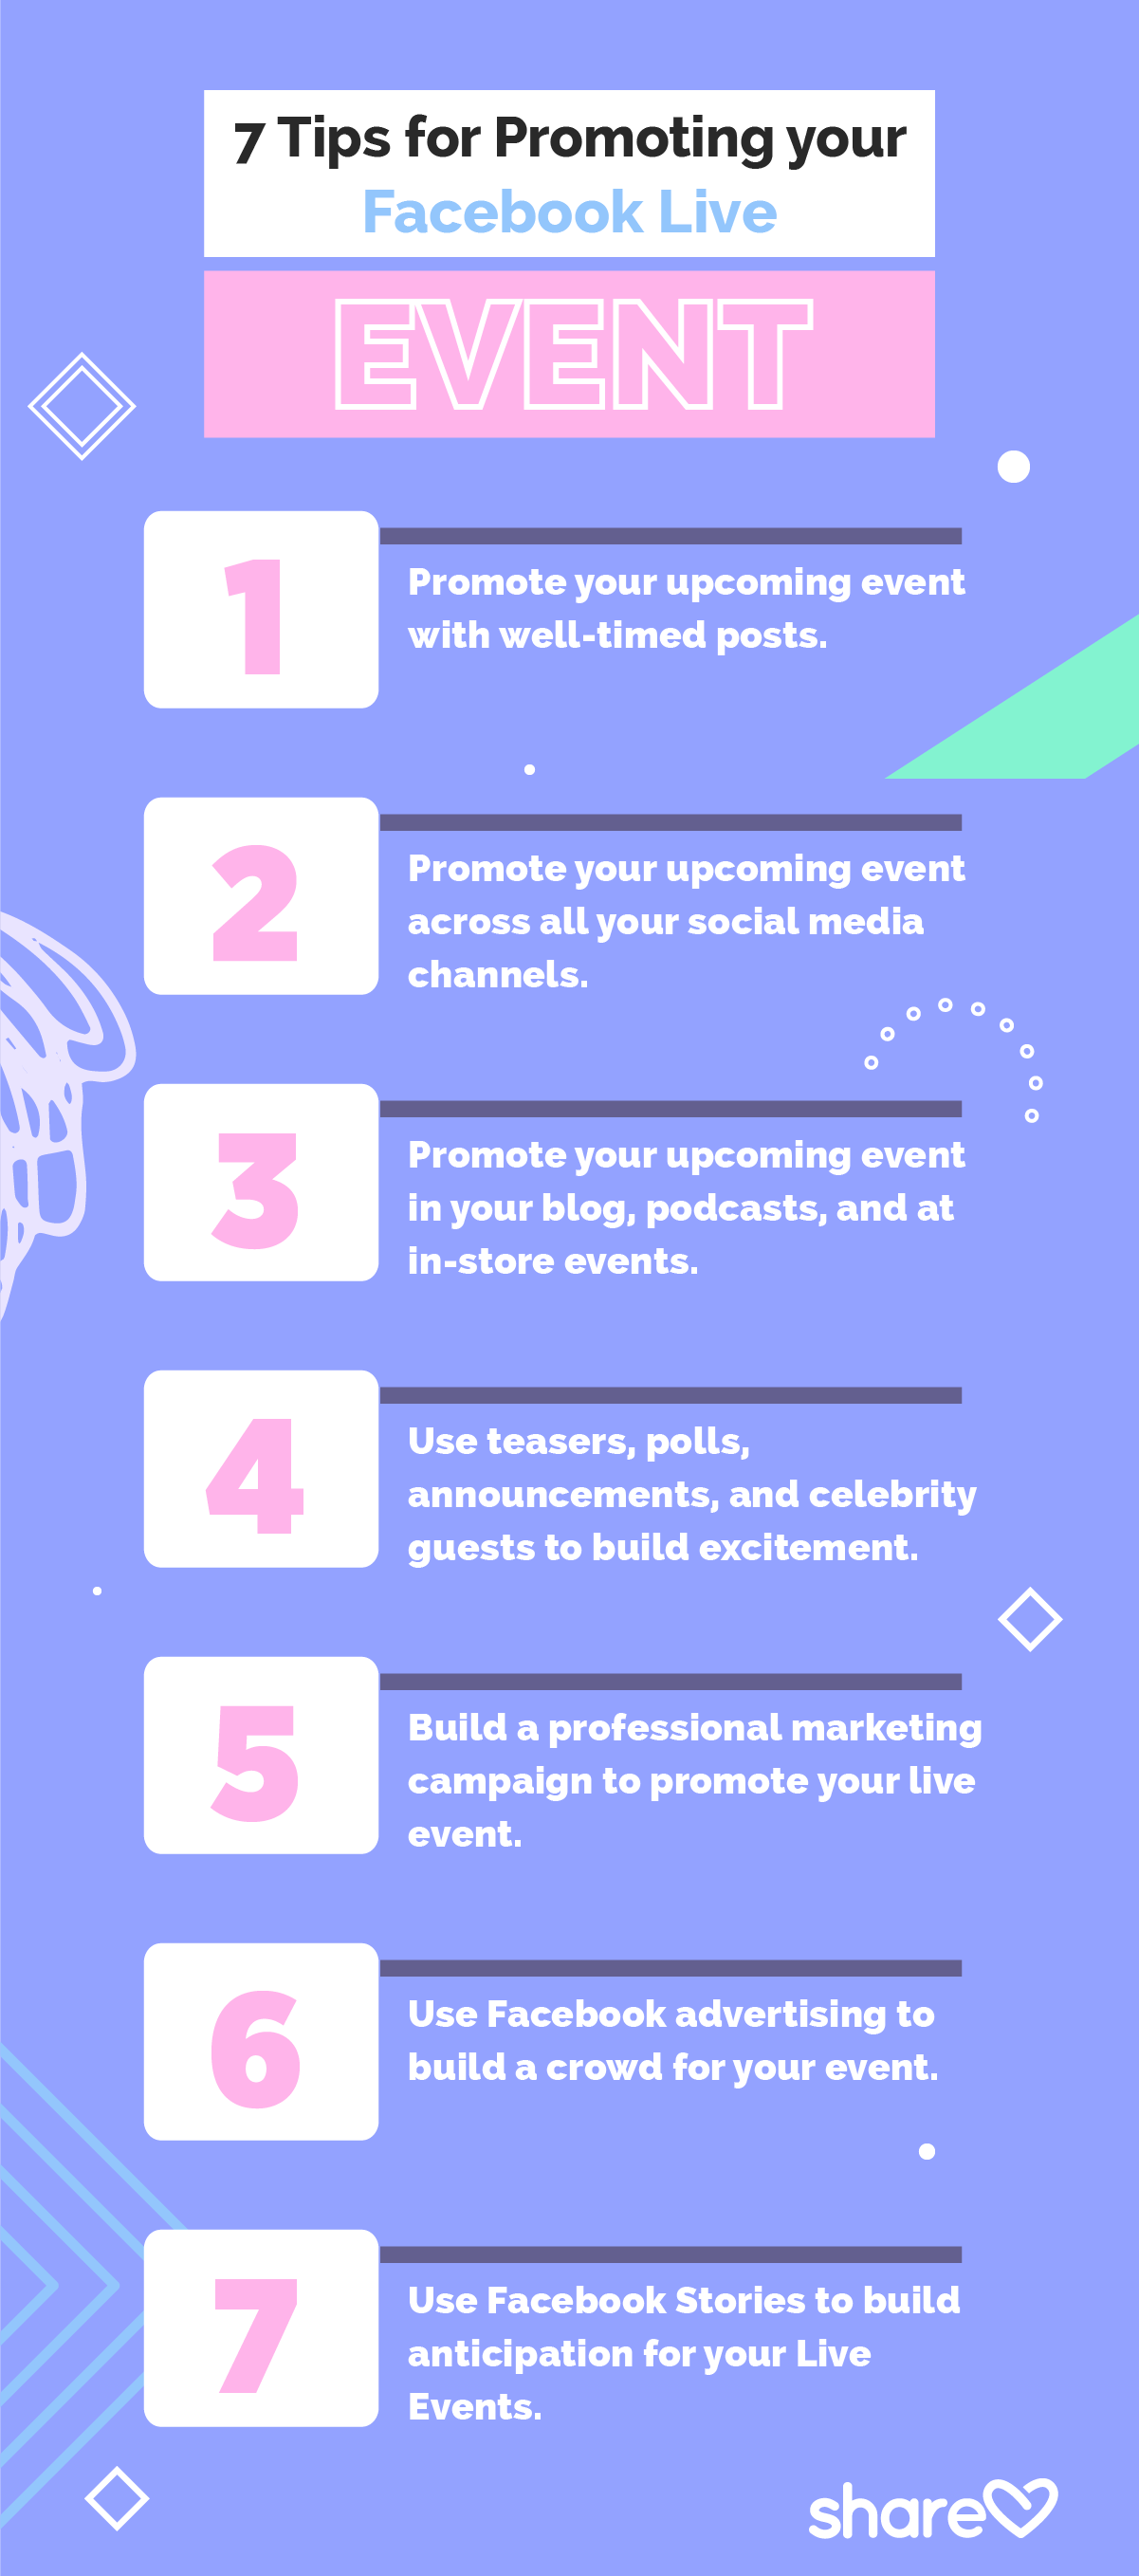 7 Tips For Promoting Your Facebook Live Event